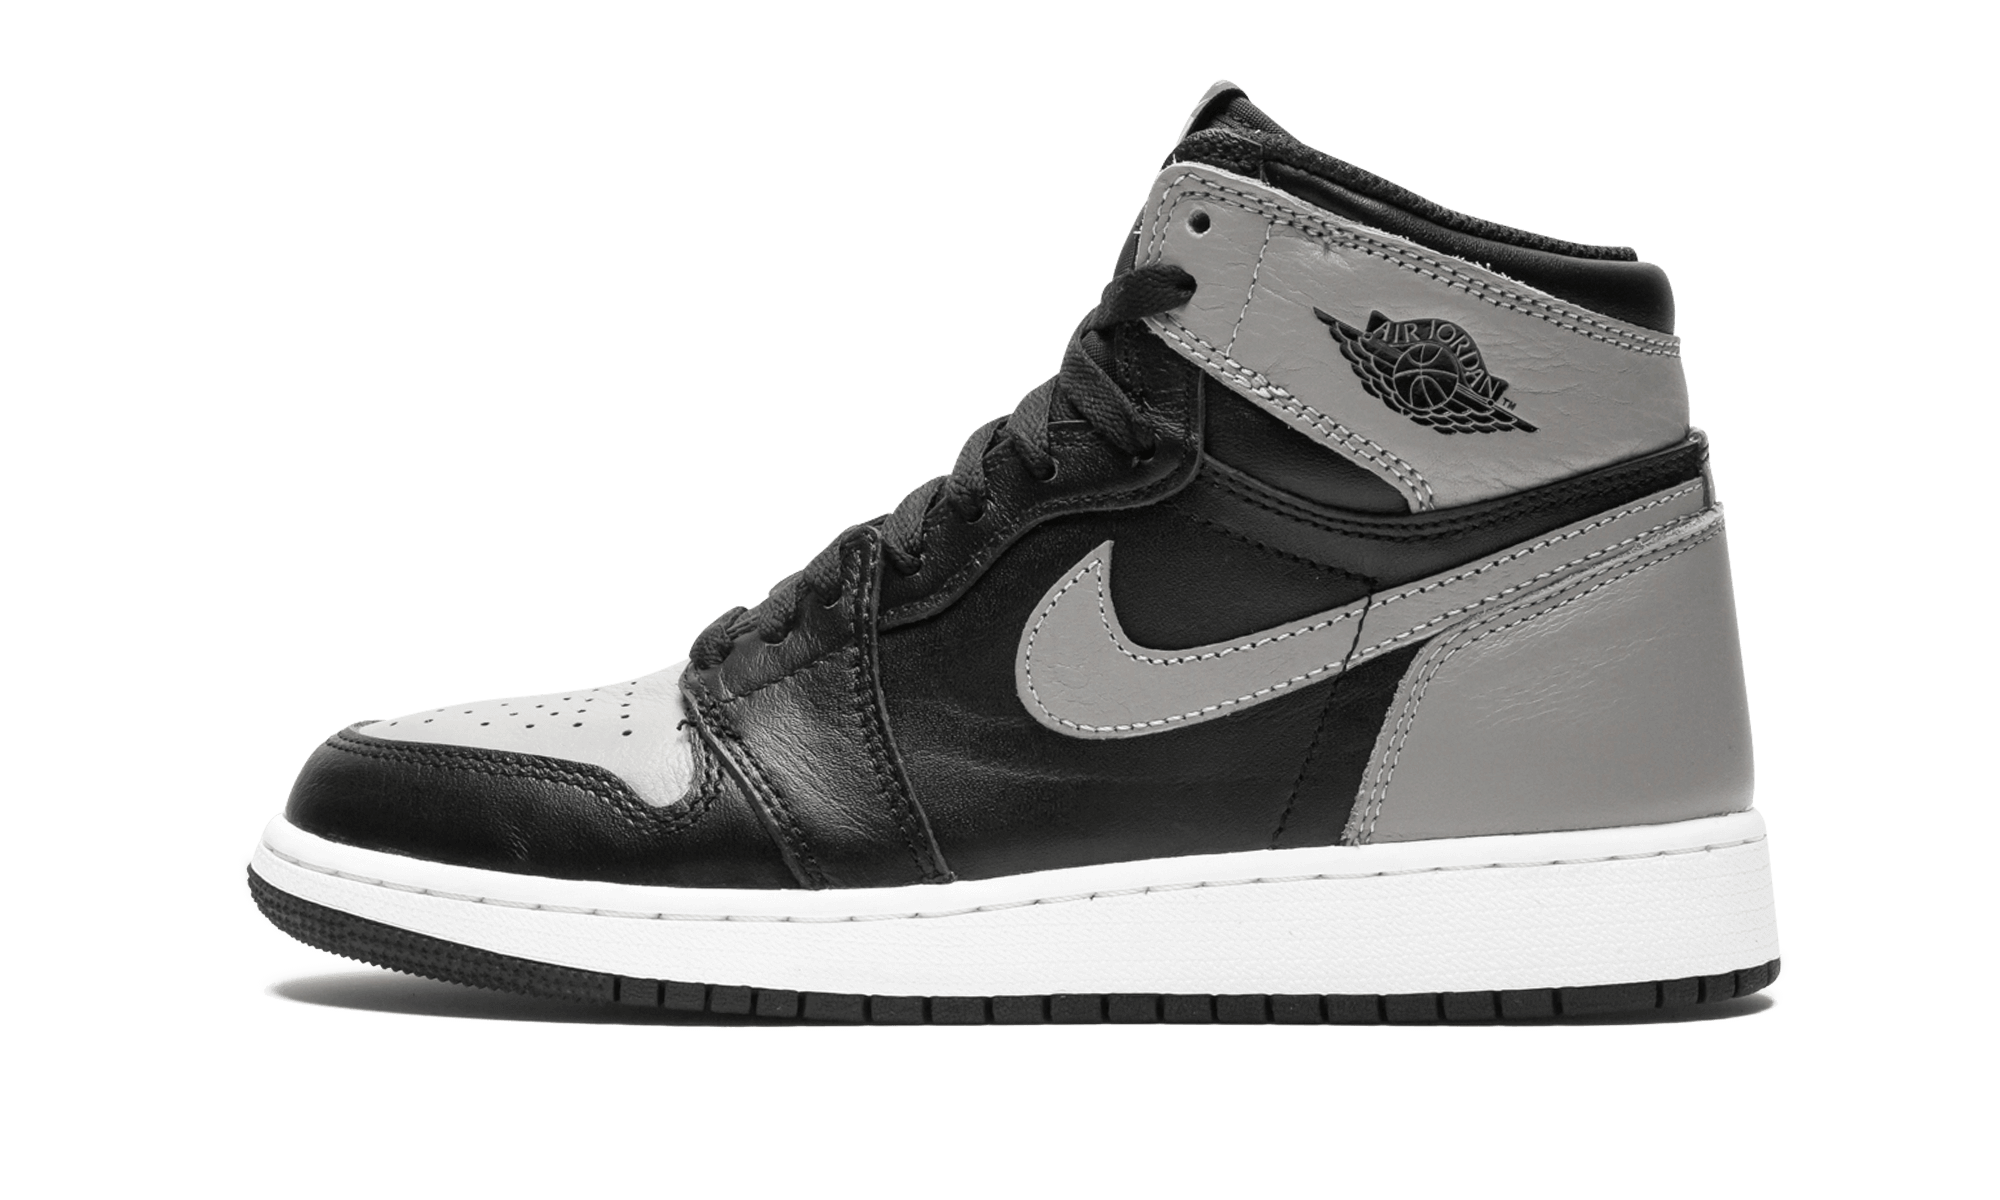 Buy New JORDANS     High OG BG Shadow sneakers